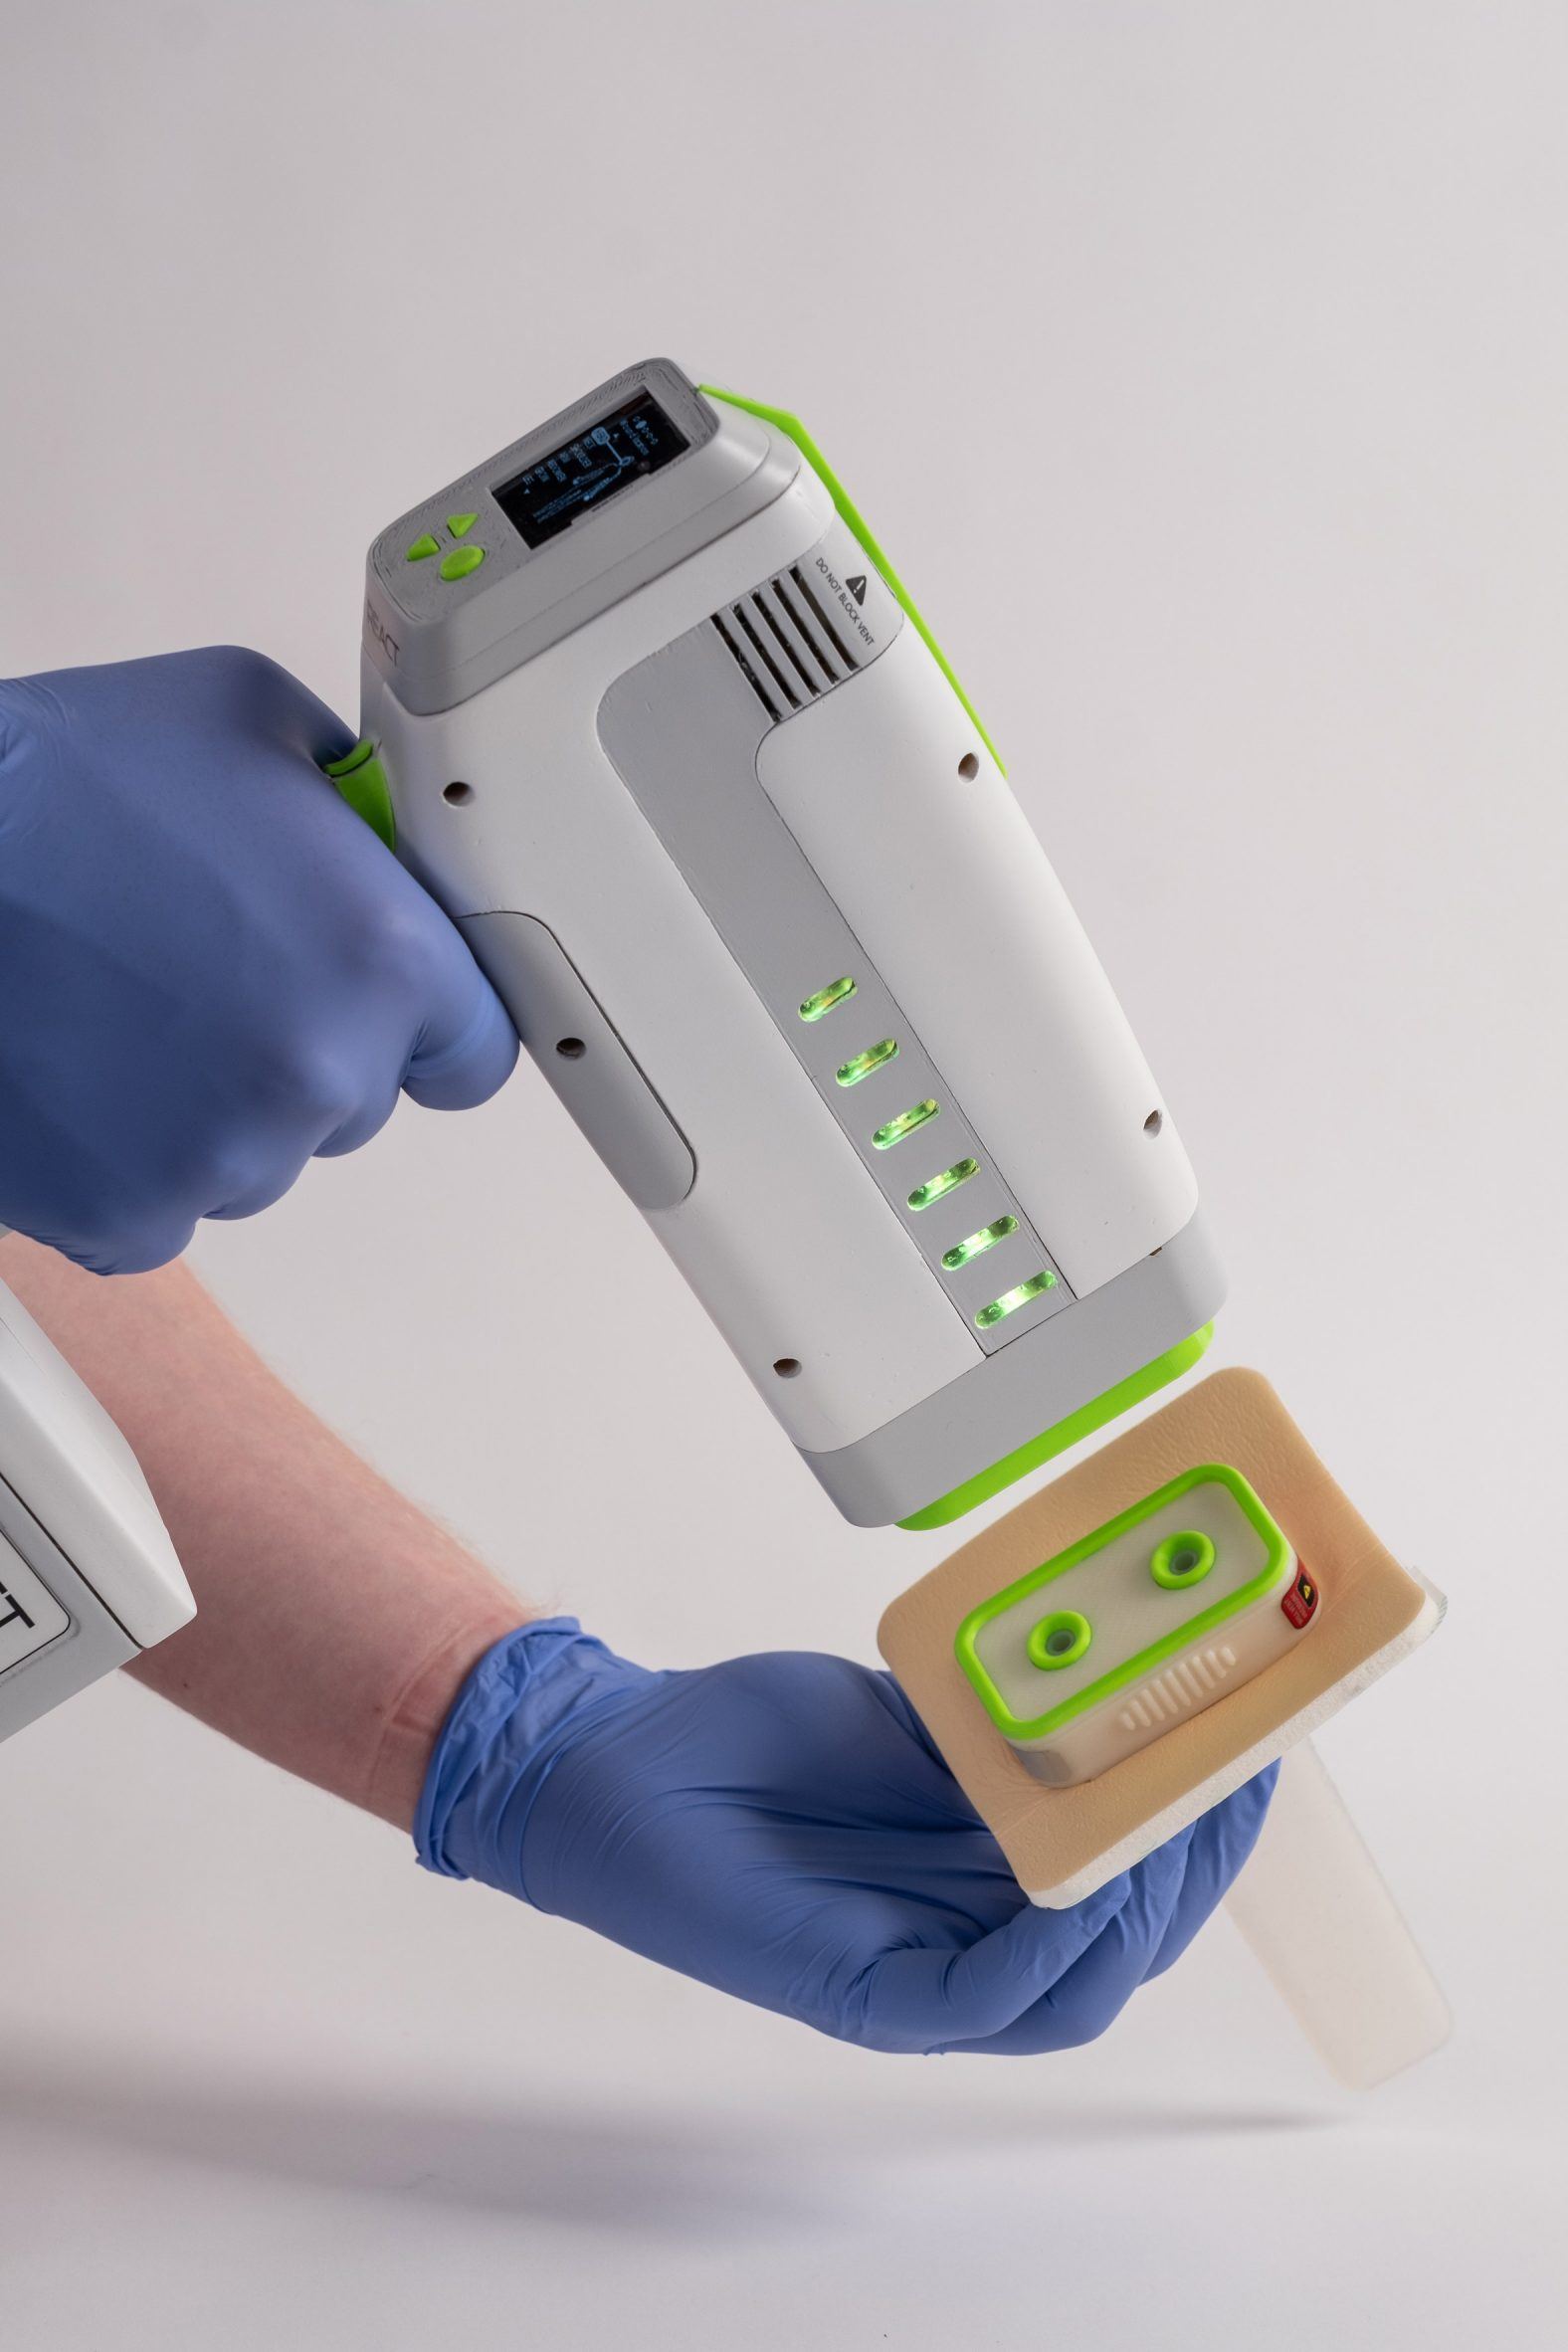 Device to reduce blood loss from knife wounds